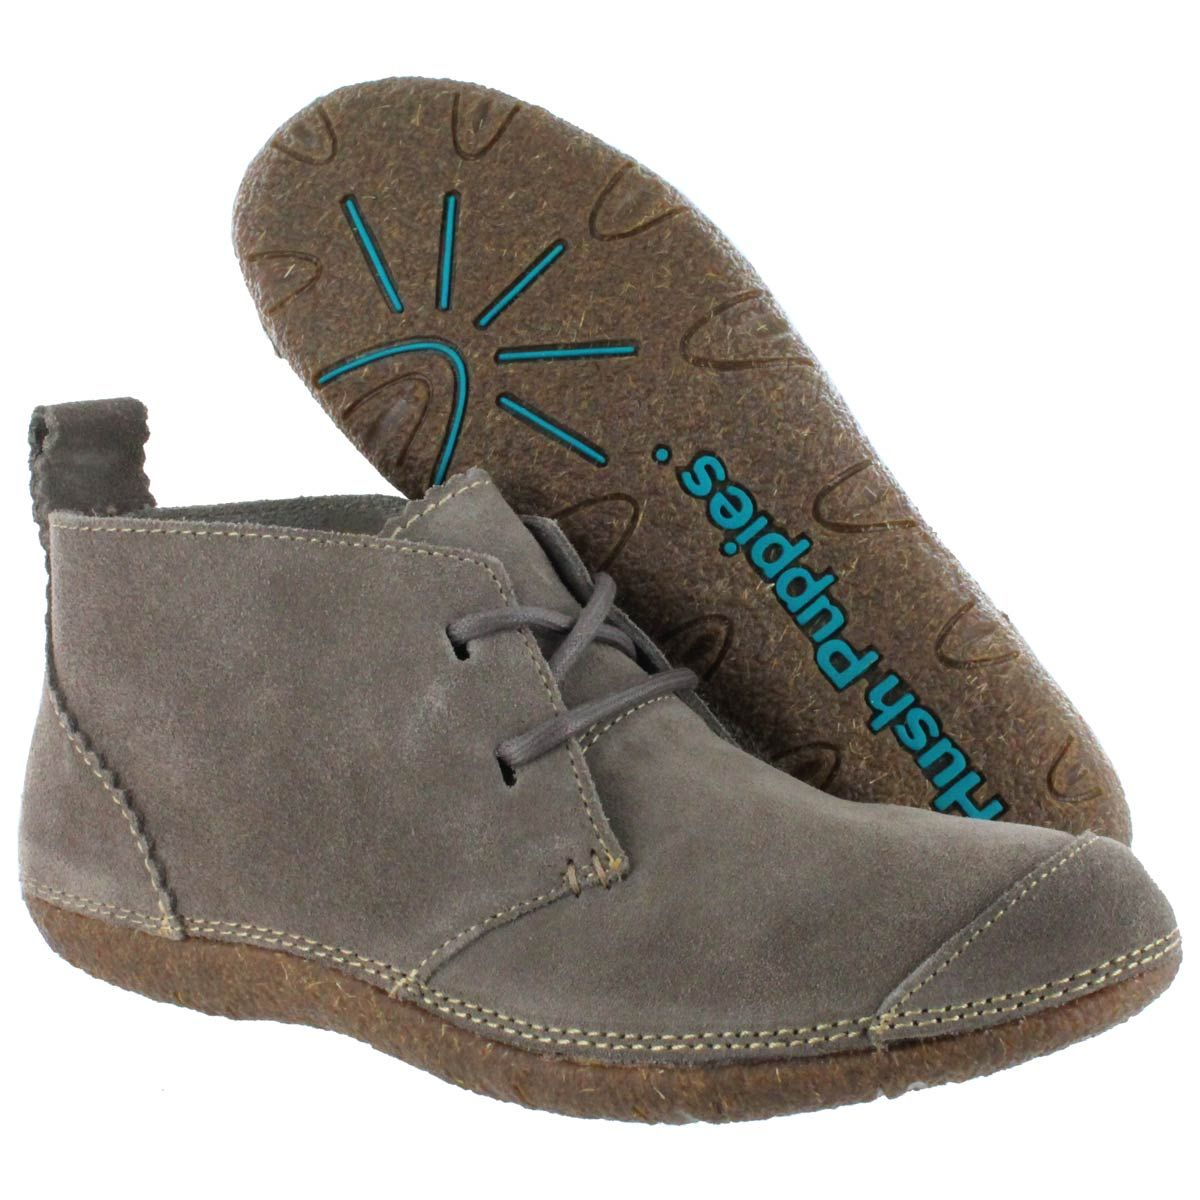 Hush Puppies For Sale Bota Sapato Sapatos Botas